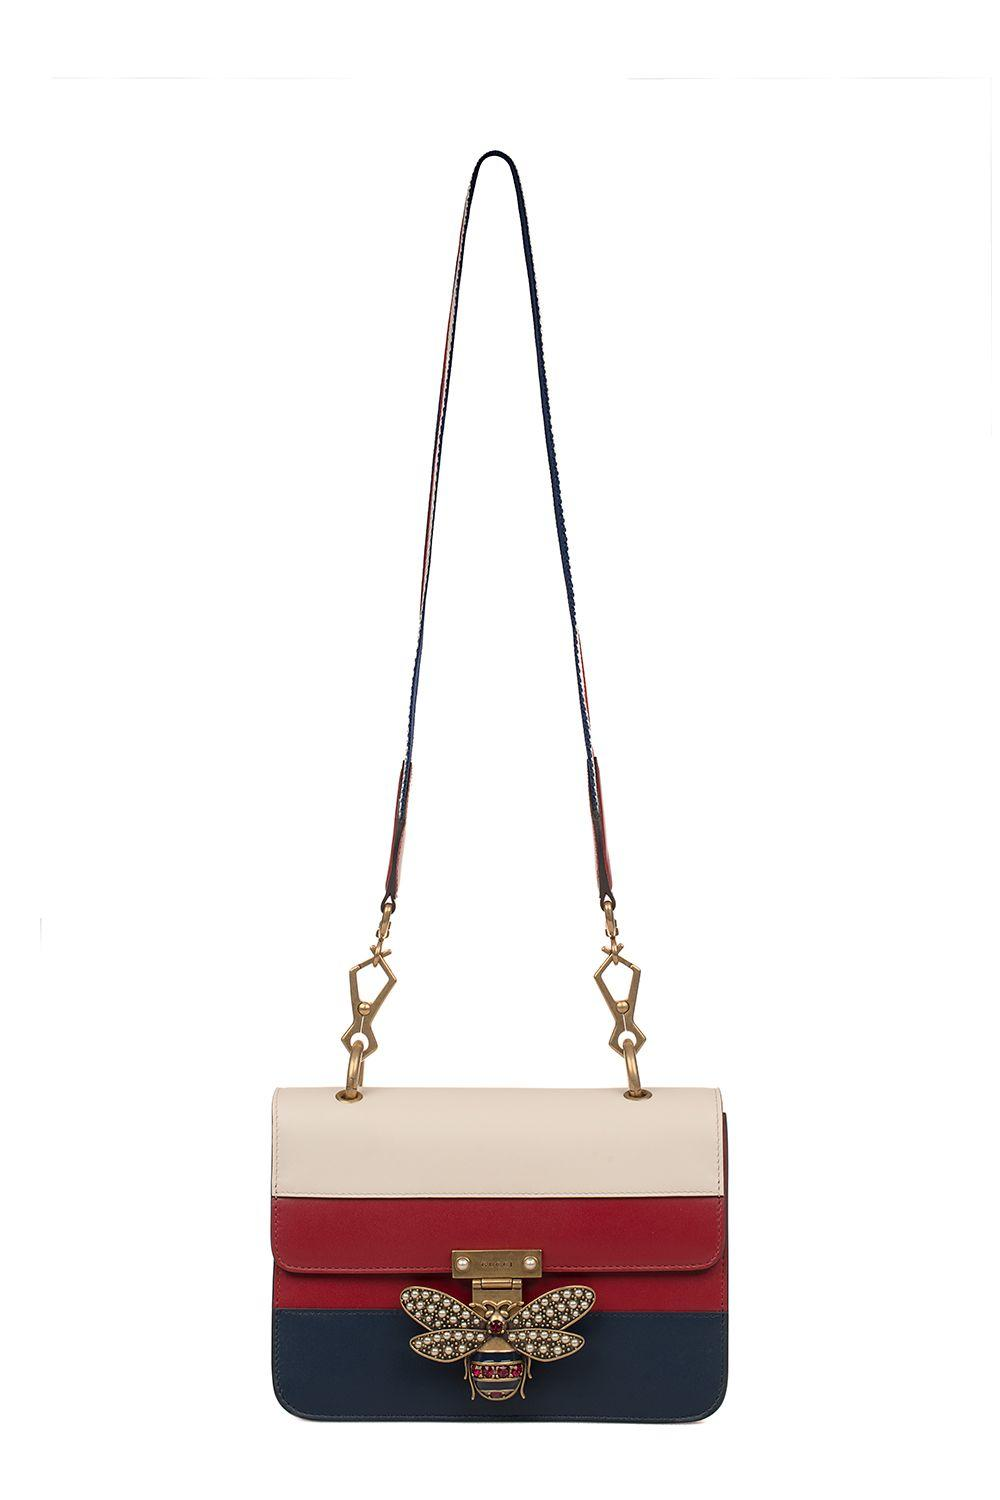 a7ed66a344a Gucci Ivory-Red-Blue Queen Margaret Leather Shoulder Bag In White - Red -